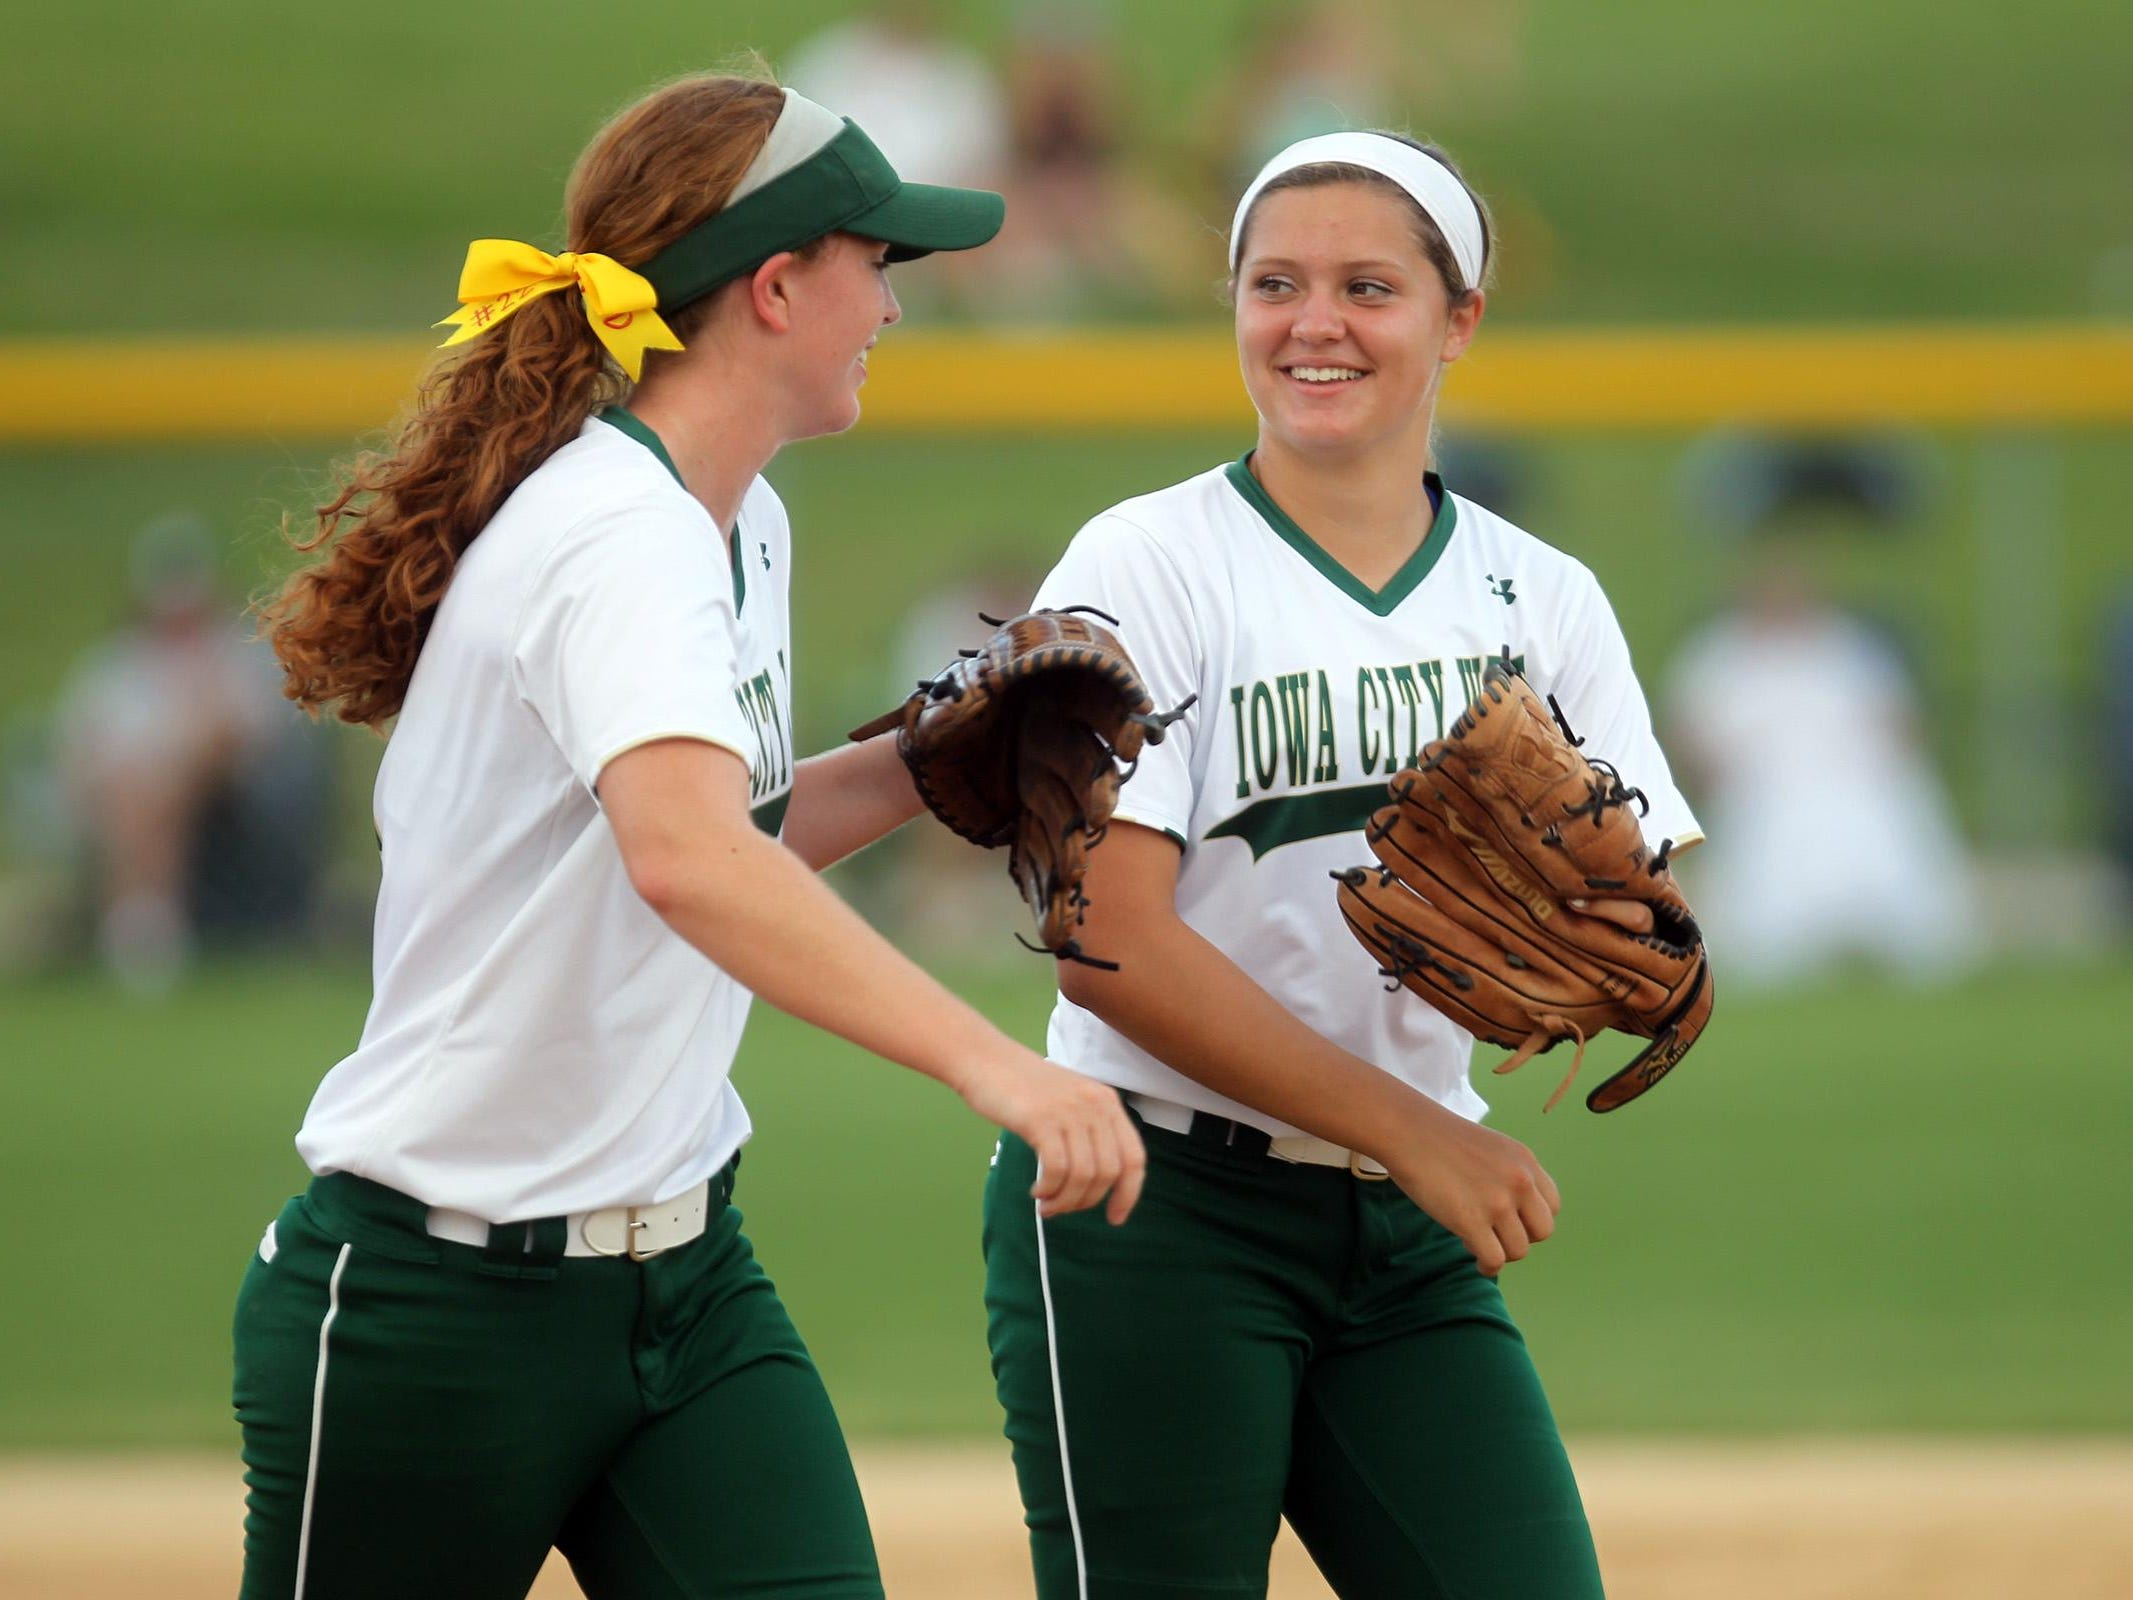 West High's Jessie Harder, left, high-five's Shea Lewis after a strikeout during their Class 5A regional championship game against Ankeny at West High on Tuesday, July 14, 2015. Ankeny won, 3-1, to head to state. David Scrivner / Iowa City Press-Citizen